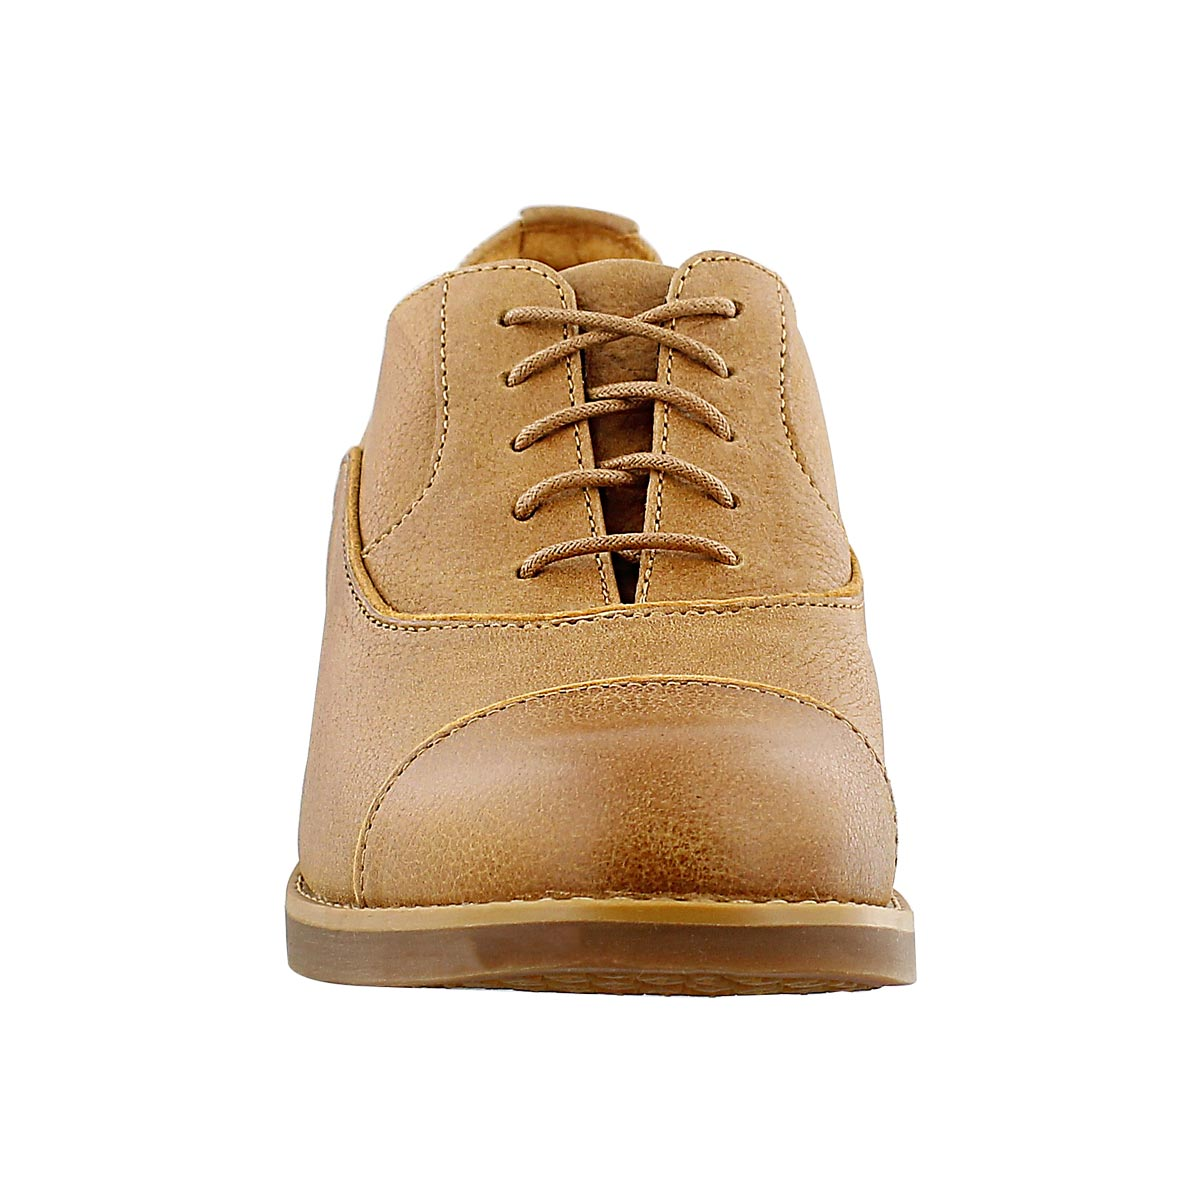 Lds Beckwith wheat 5 eye oxford